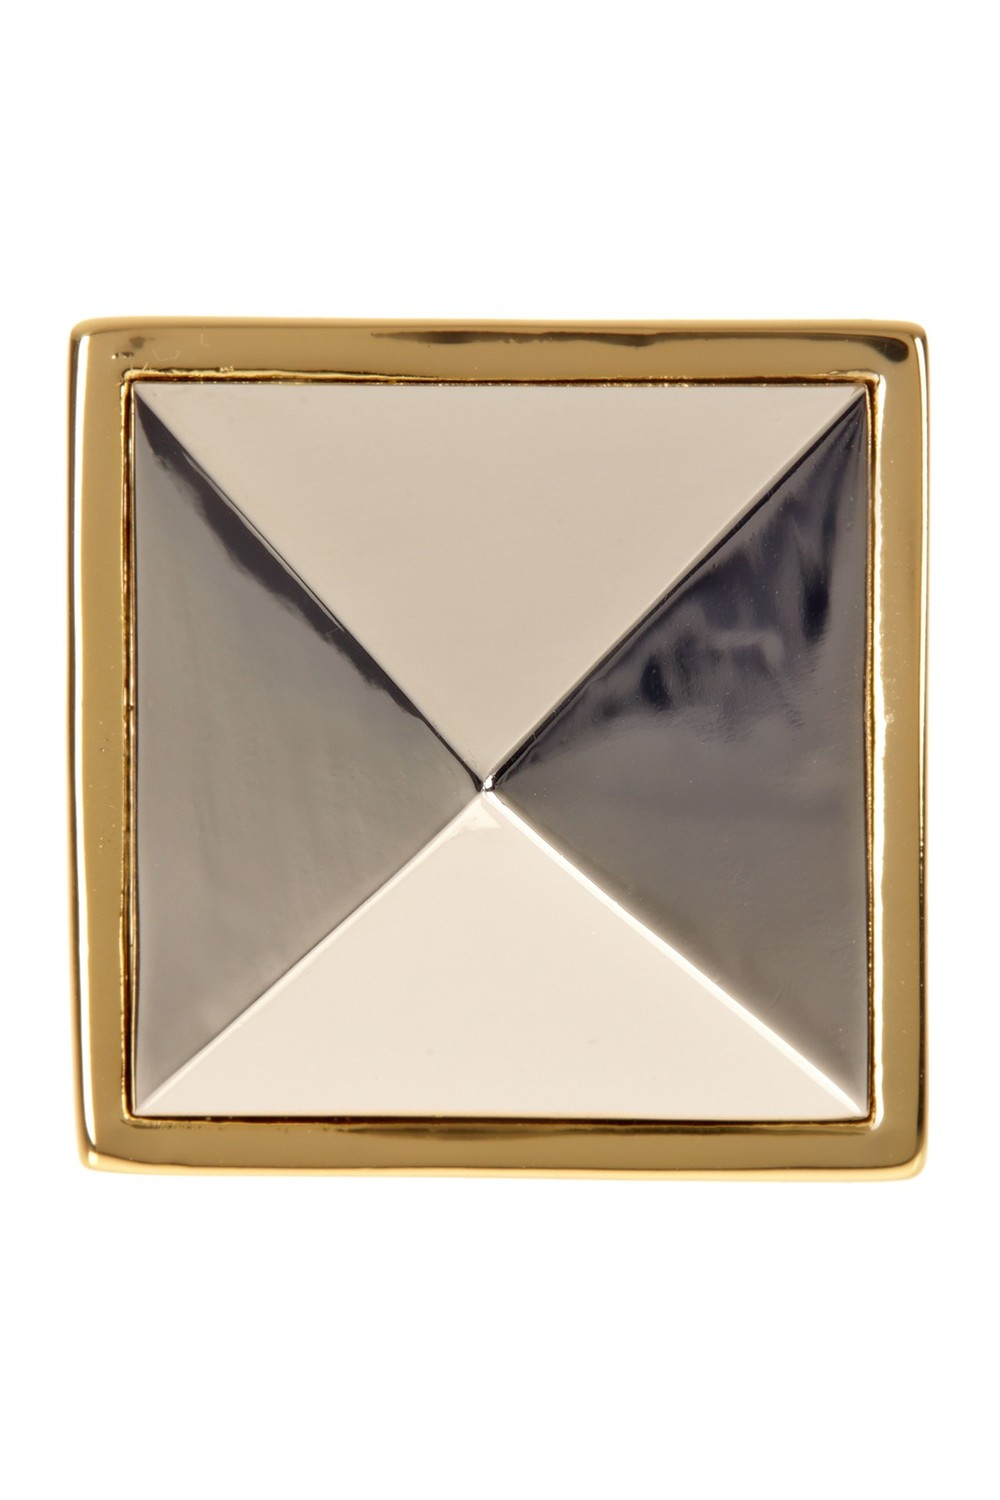 Trina Turk Pyramid Stud Stone Ring. Nordstrom Rack. Was: $88 Now: $24.